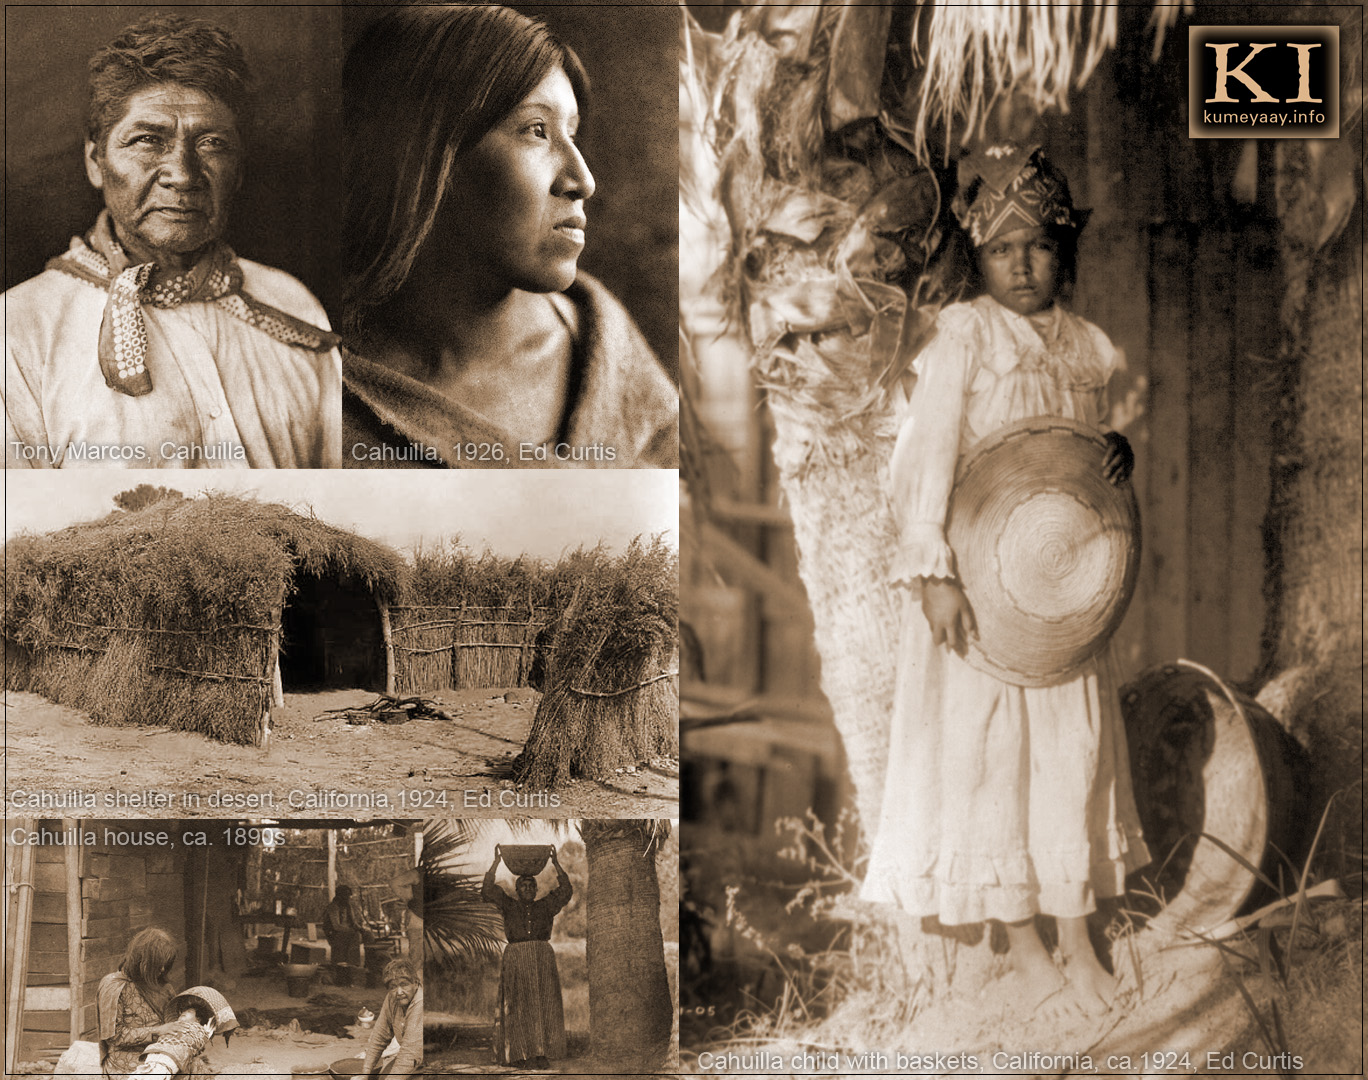 los coyotes n reservation photos native american cahuilla historical cahuilla photographs higher resolution